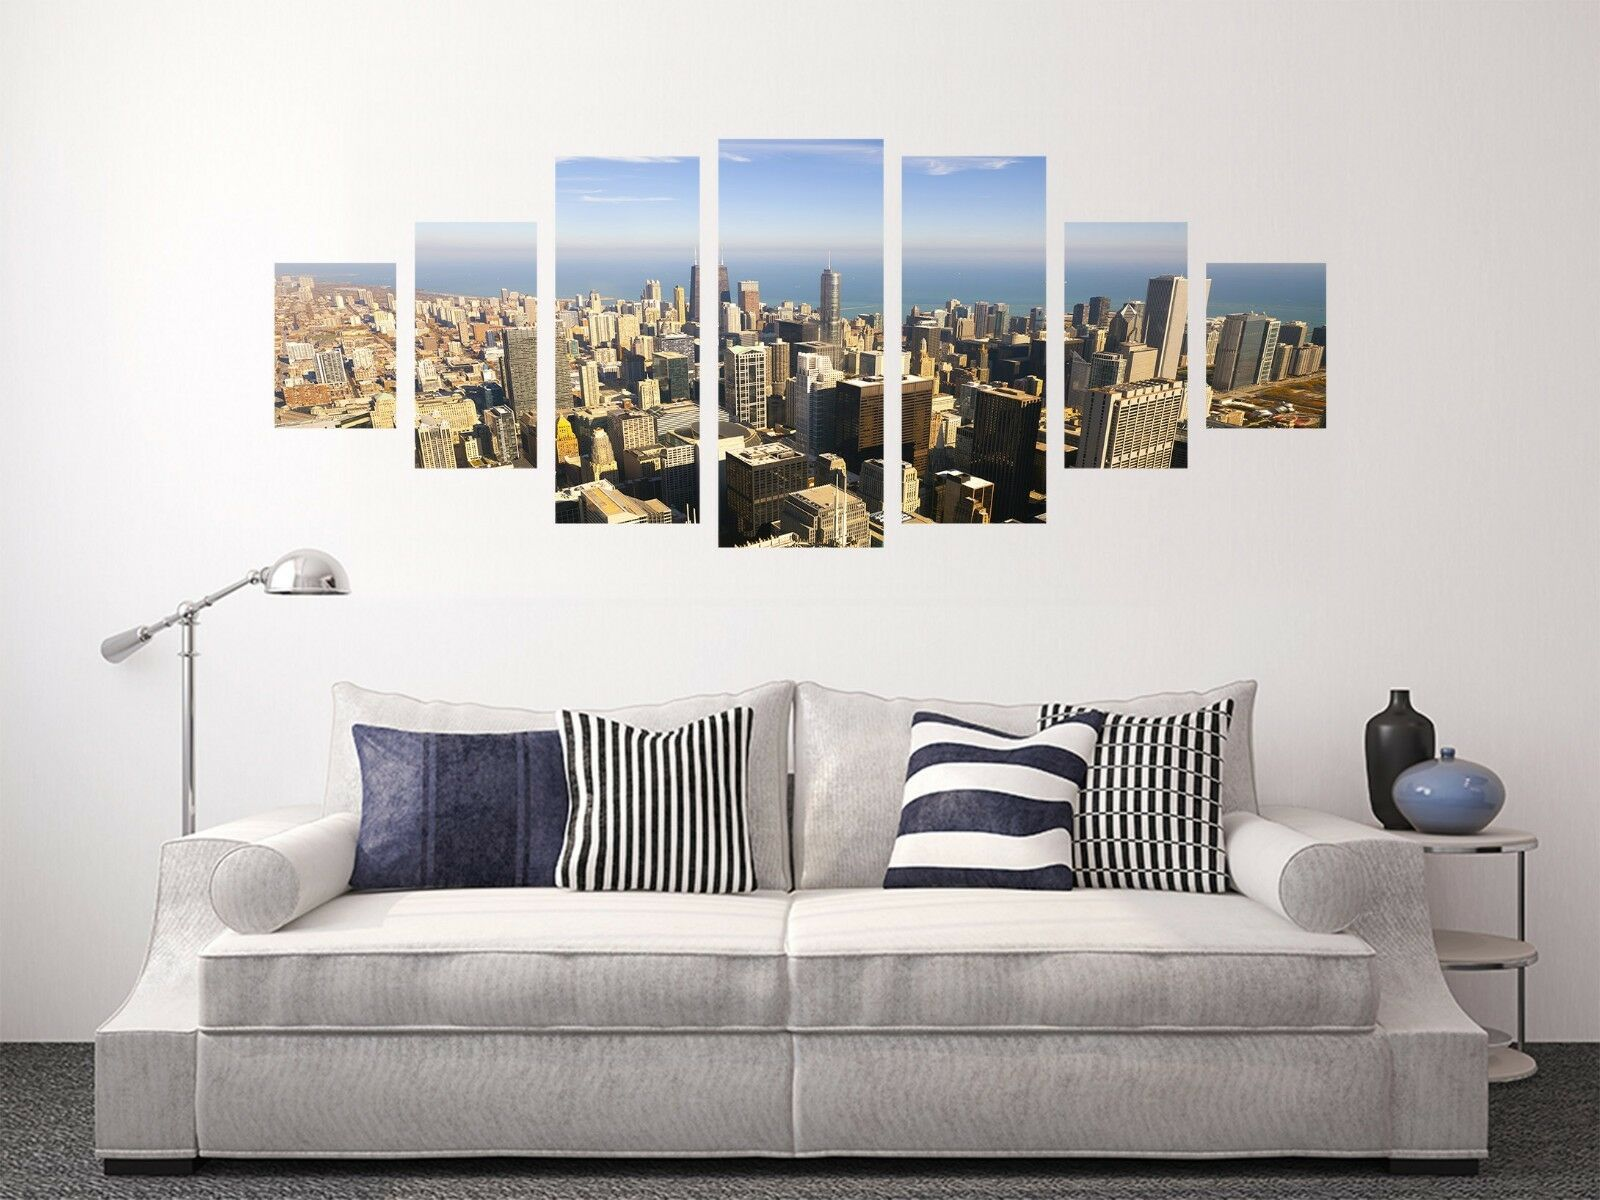 3D Building Street 72 Unframed Print Wall Paper Decal Wall Deco Indoor AJ Jenny